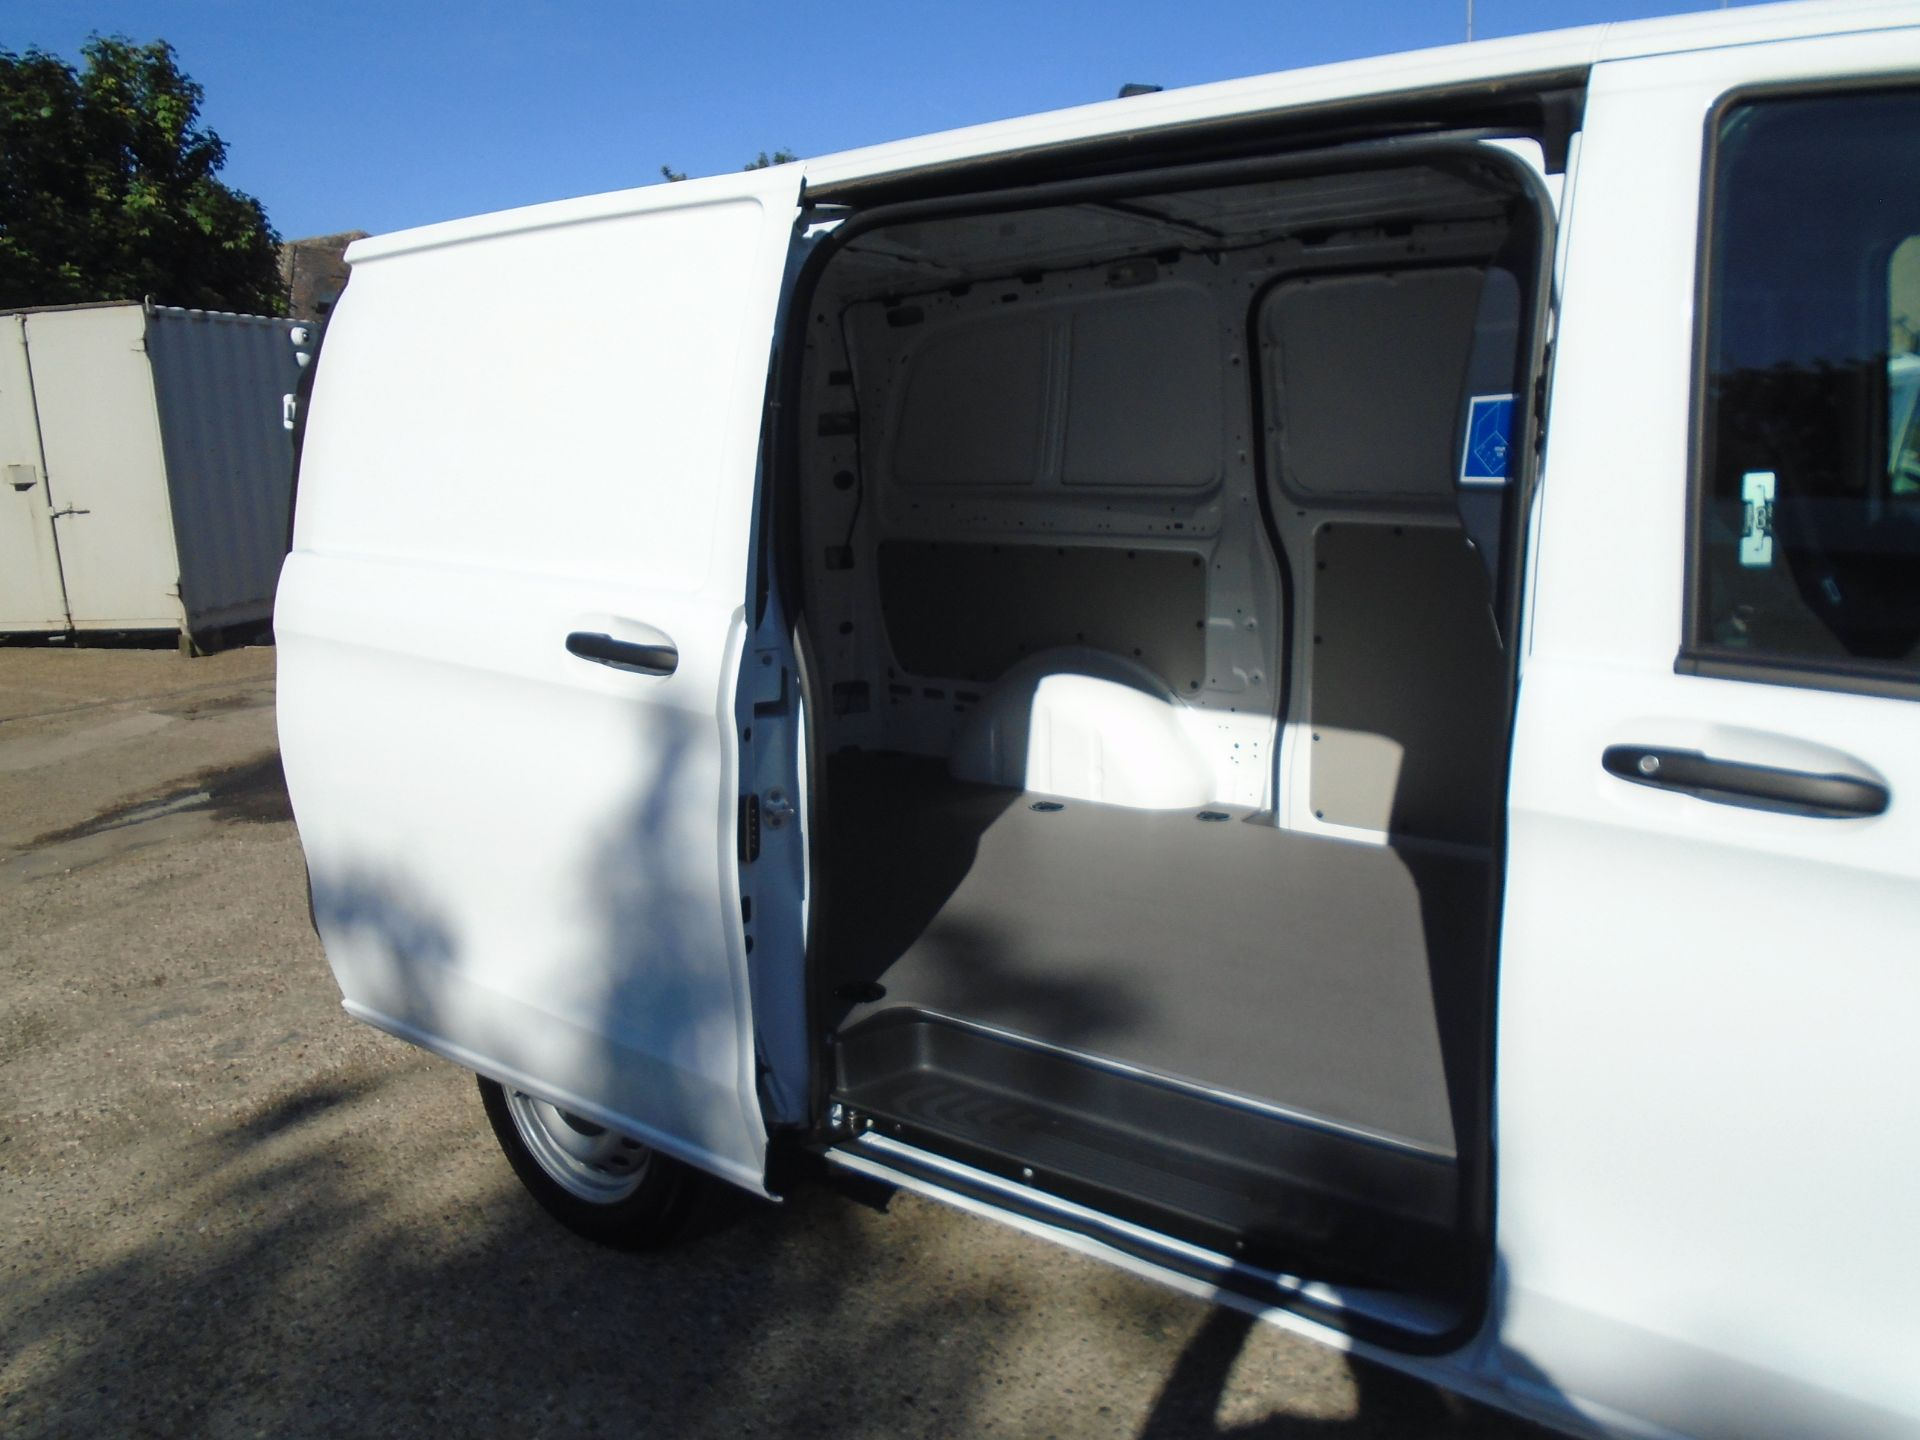 2019 Mercedes-Benz Vito  111Cdi Van Euro 6 Massive specification A/C Air Con, Delivery Miles Only (YN19ZFR) Image 11